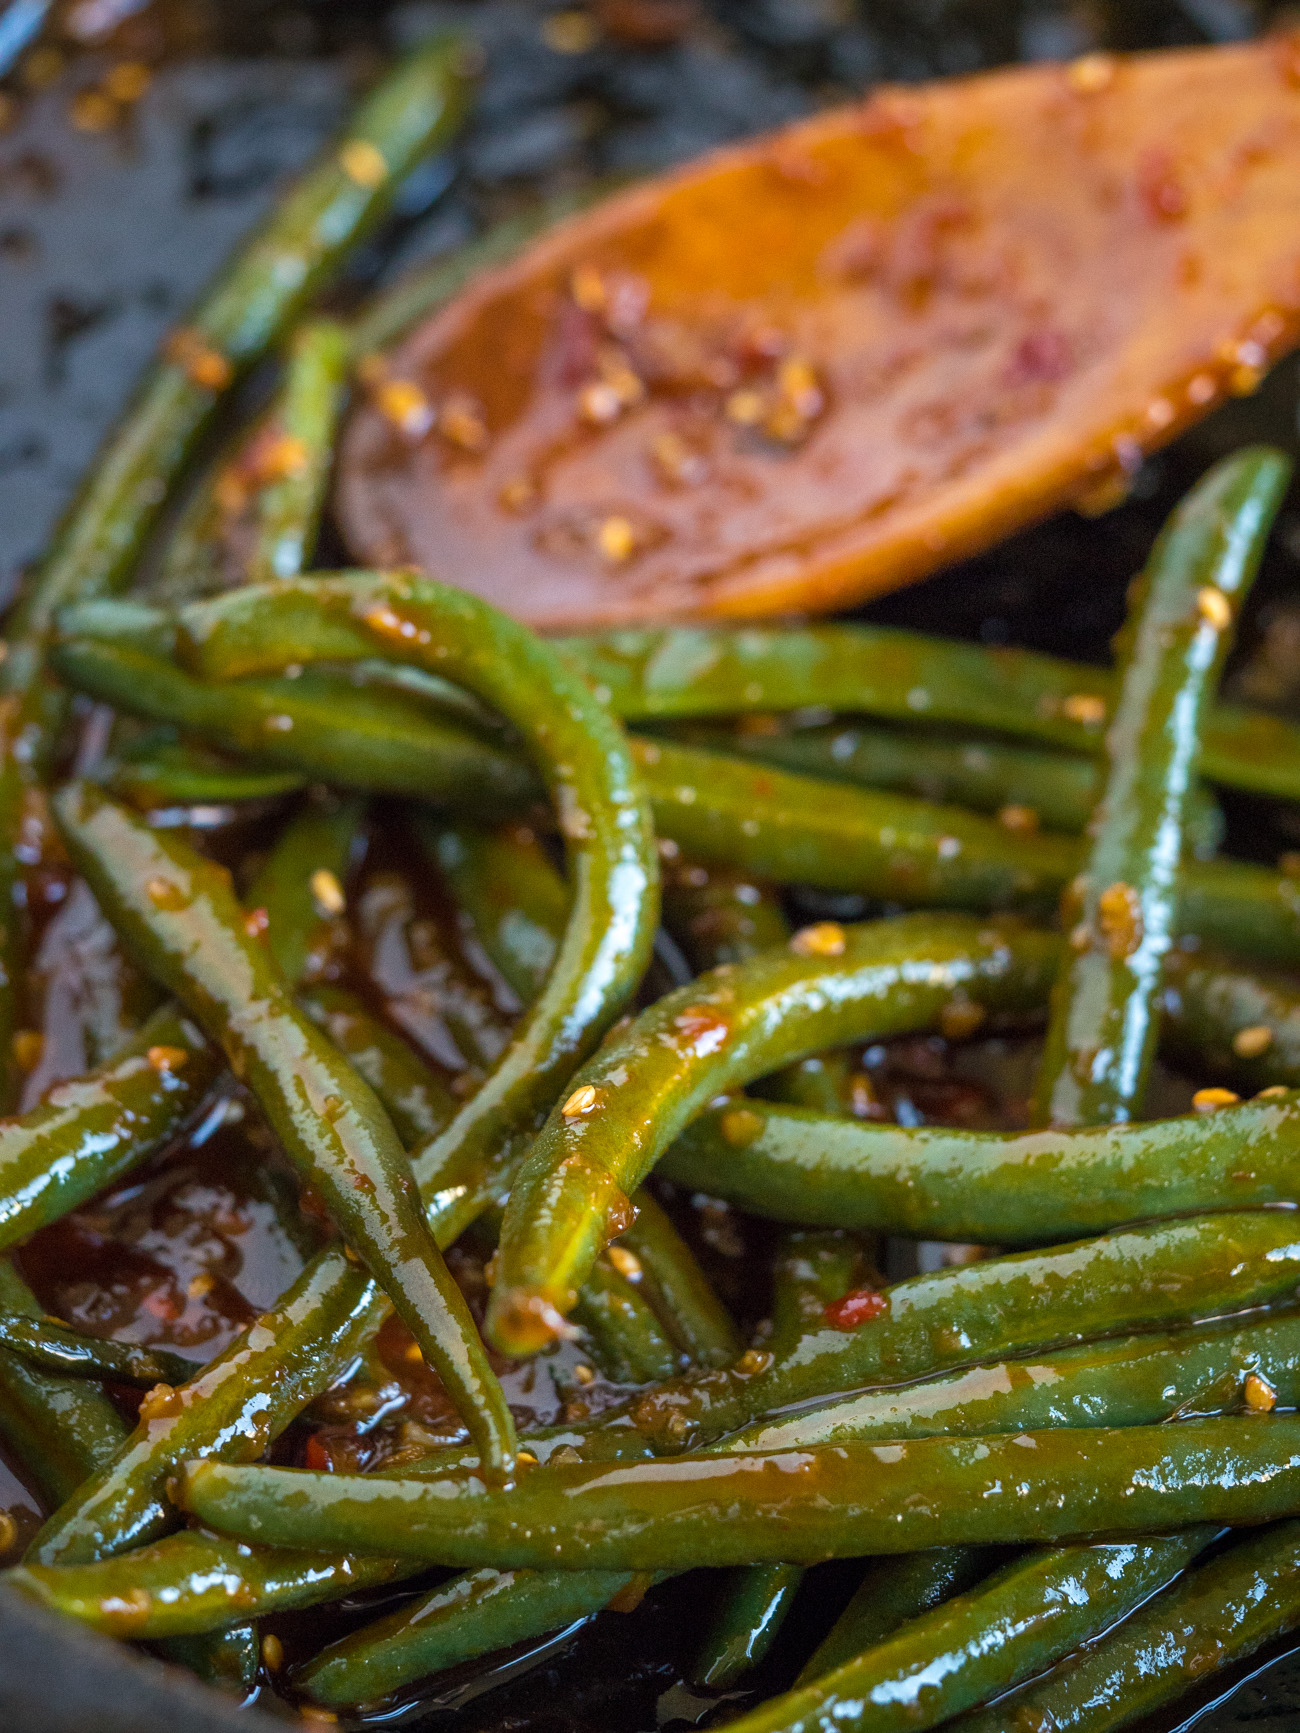 Add Sriracha mixture to the pan and simmer uncovered for a few minutes. Once the green beans are tender, toss with sesame seeds and serve up hot!